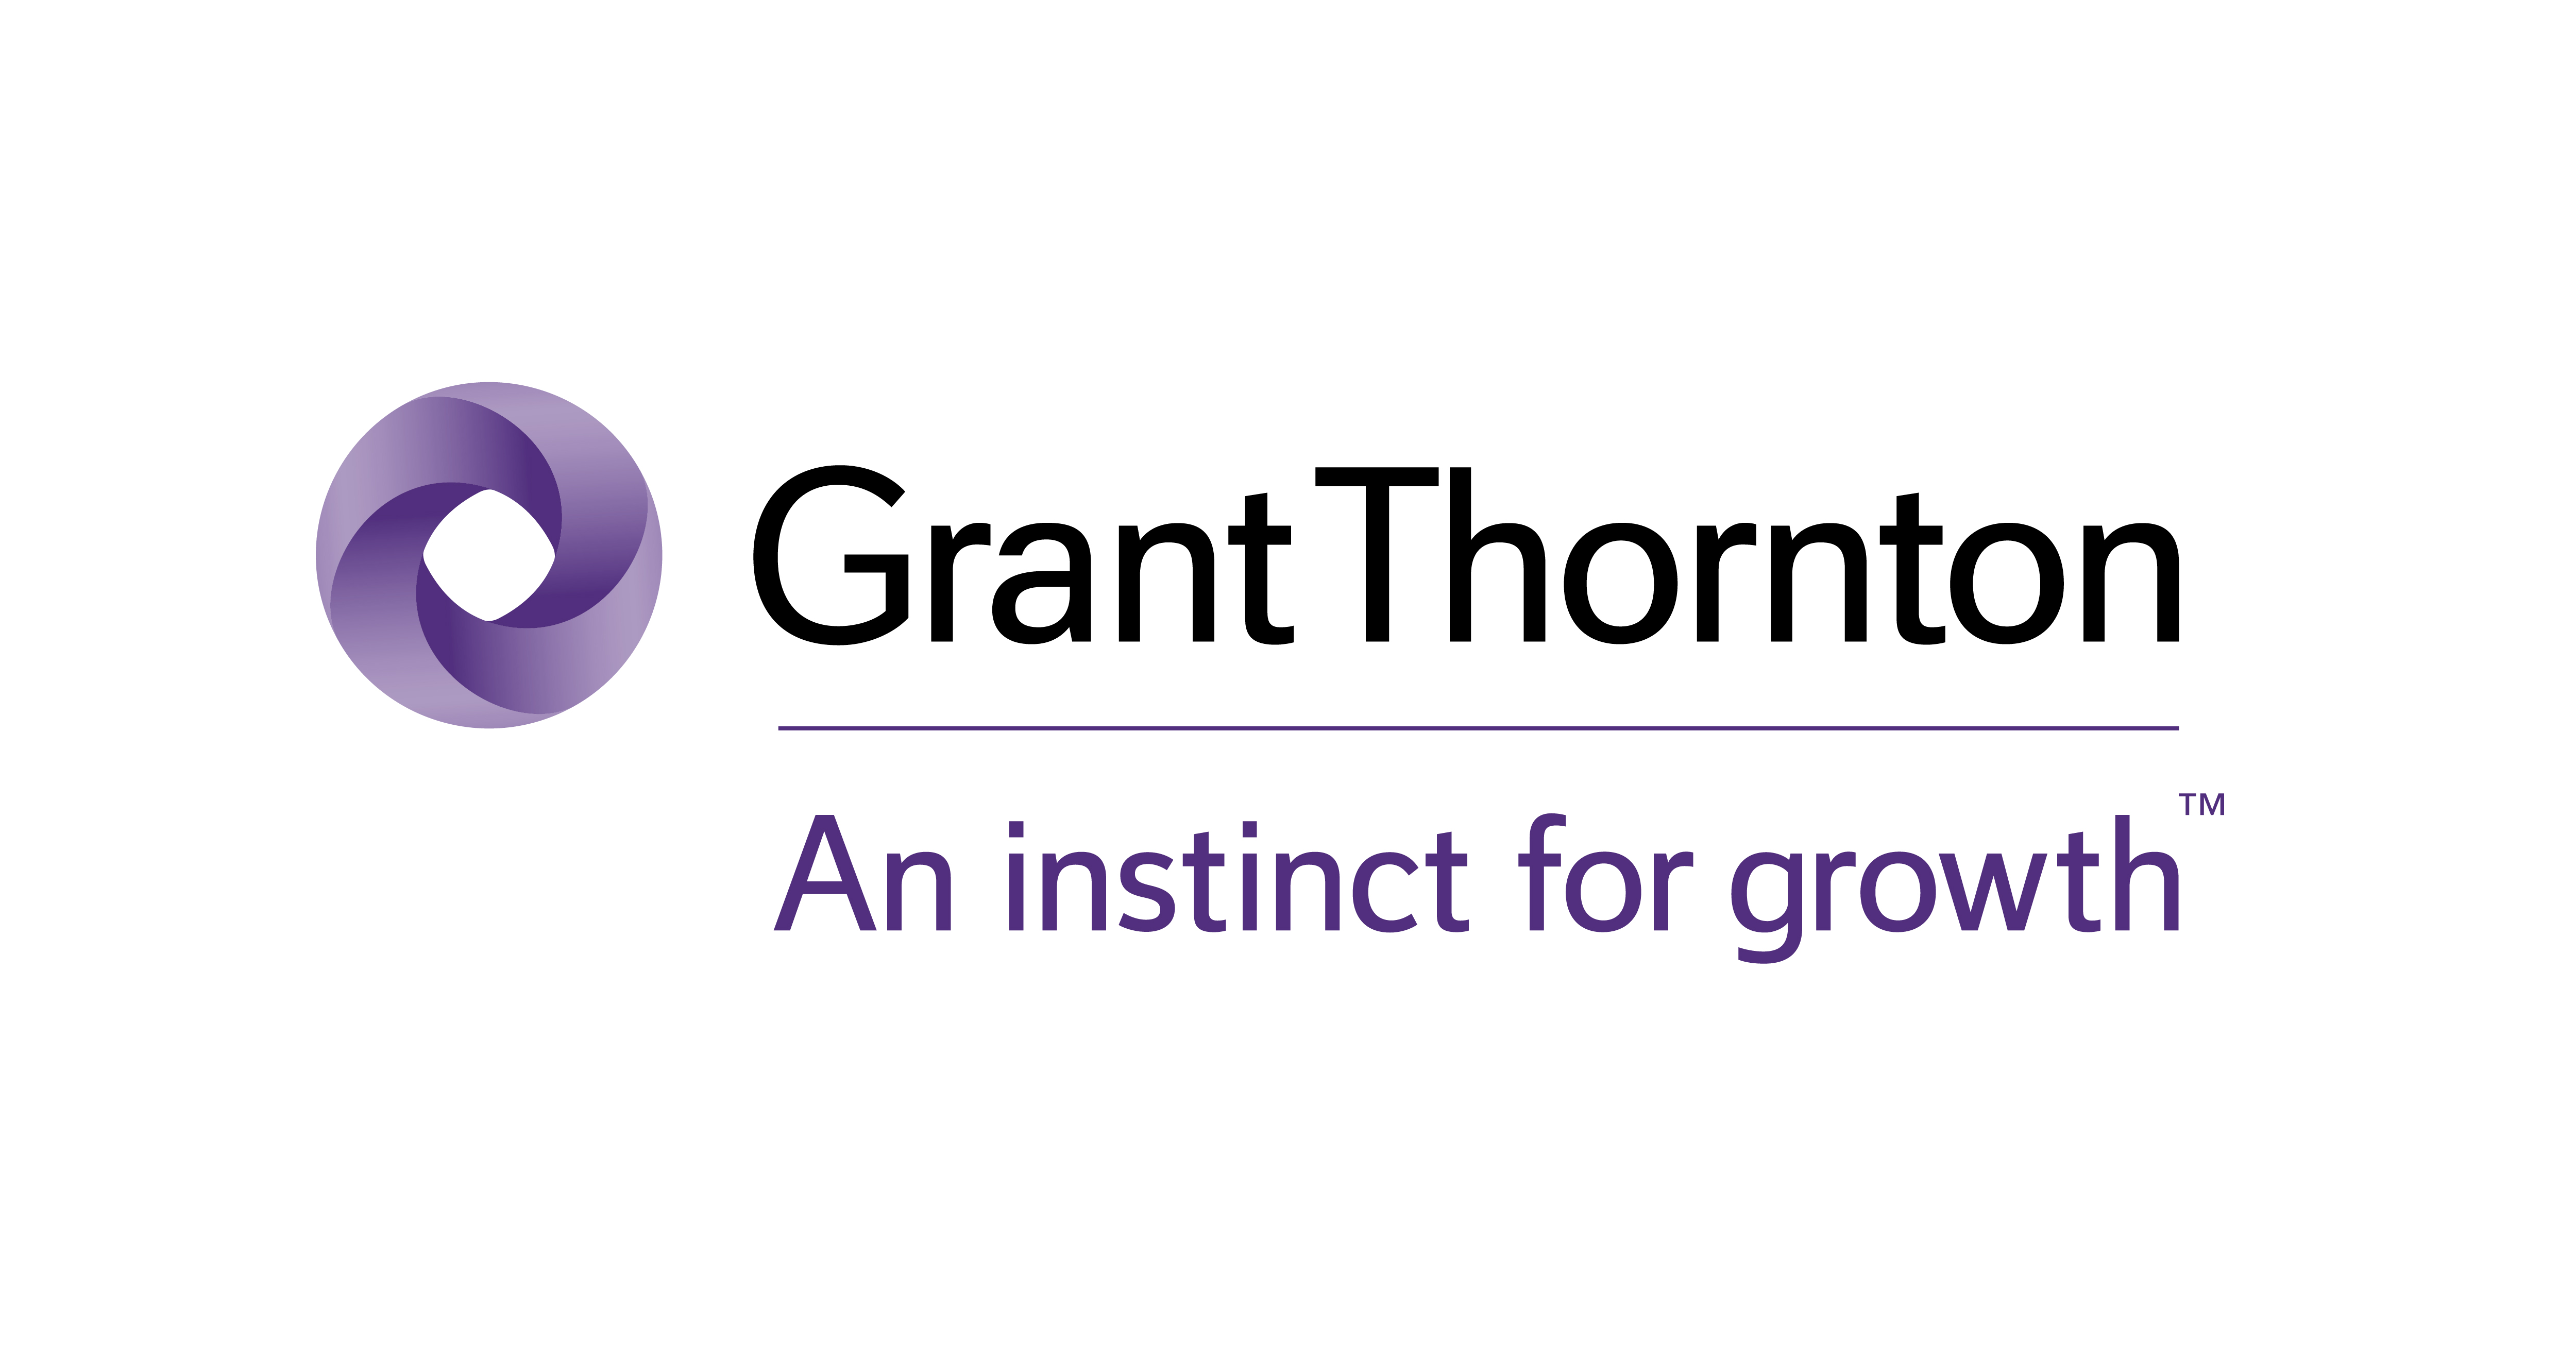 Lions Veur Tourrally Grant Thornton